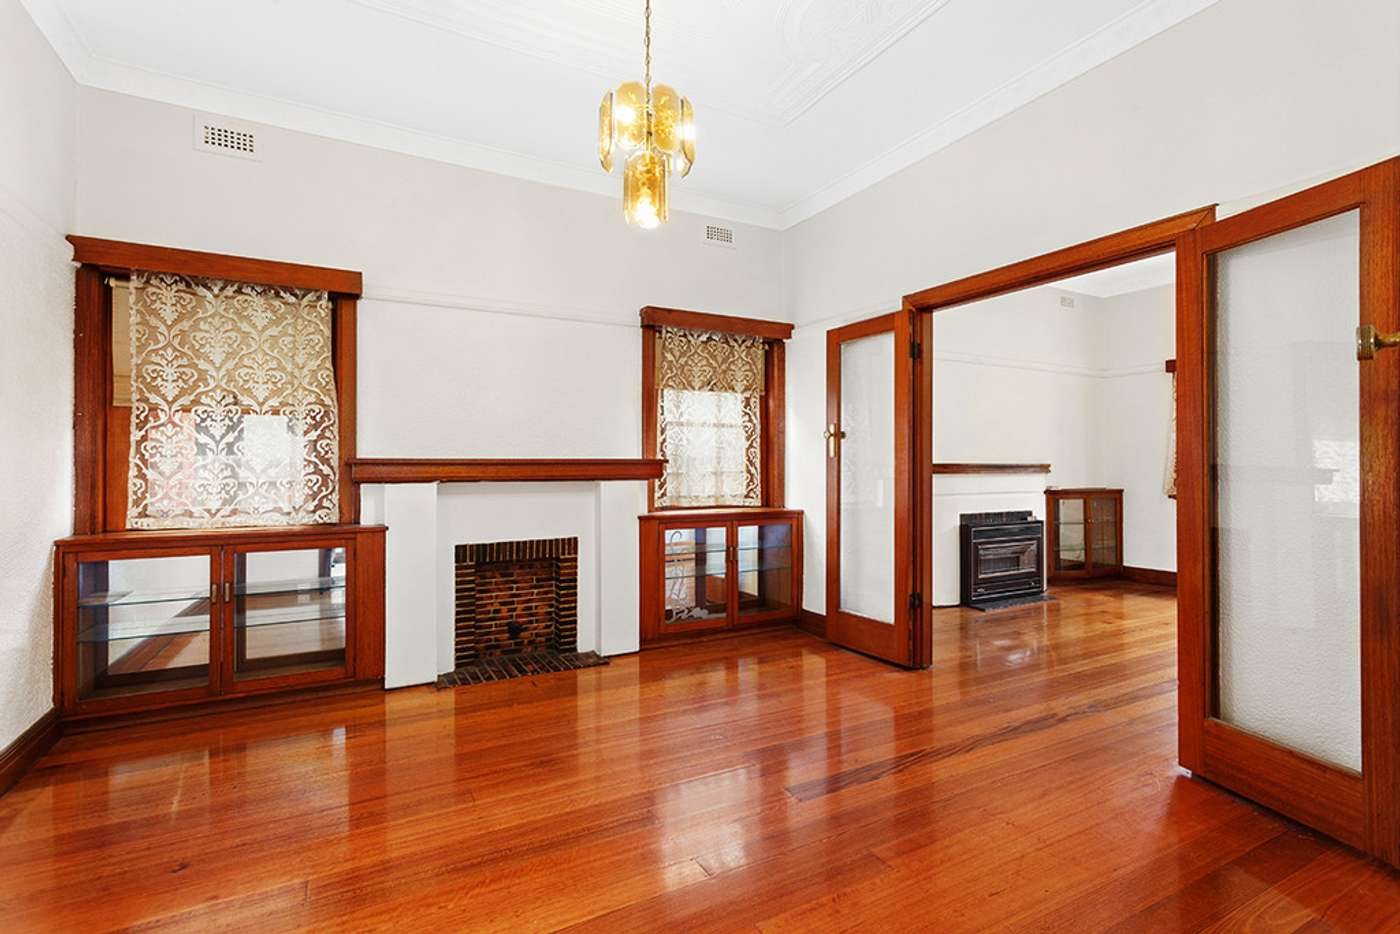 Main view of Homely house listing, 556 Centre Road, Bentleigh VIC 3204